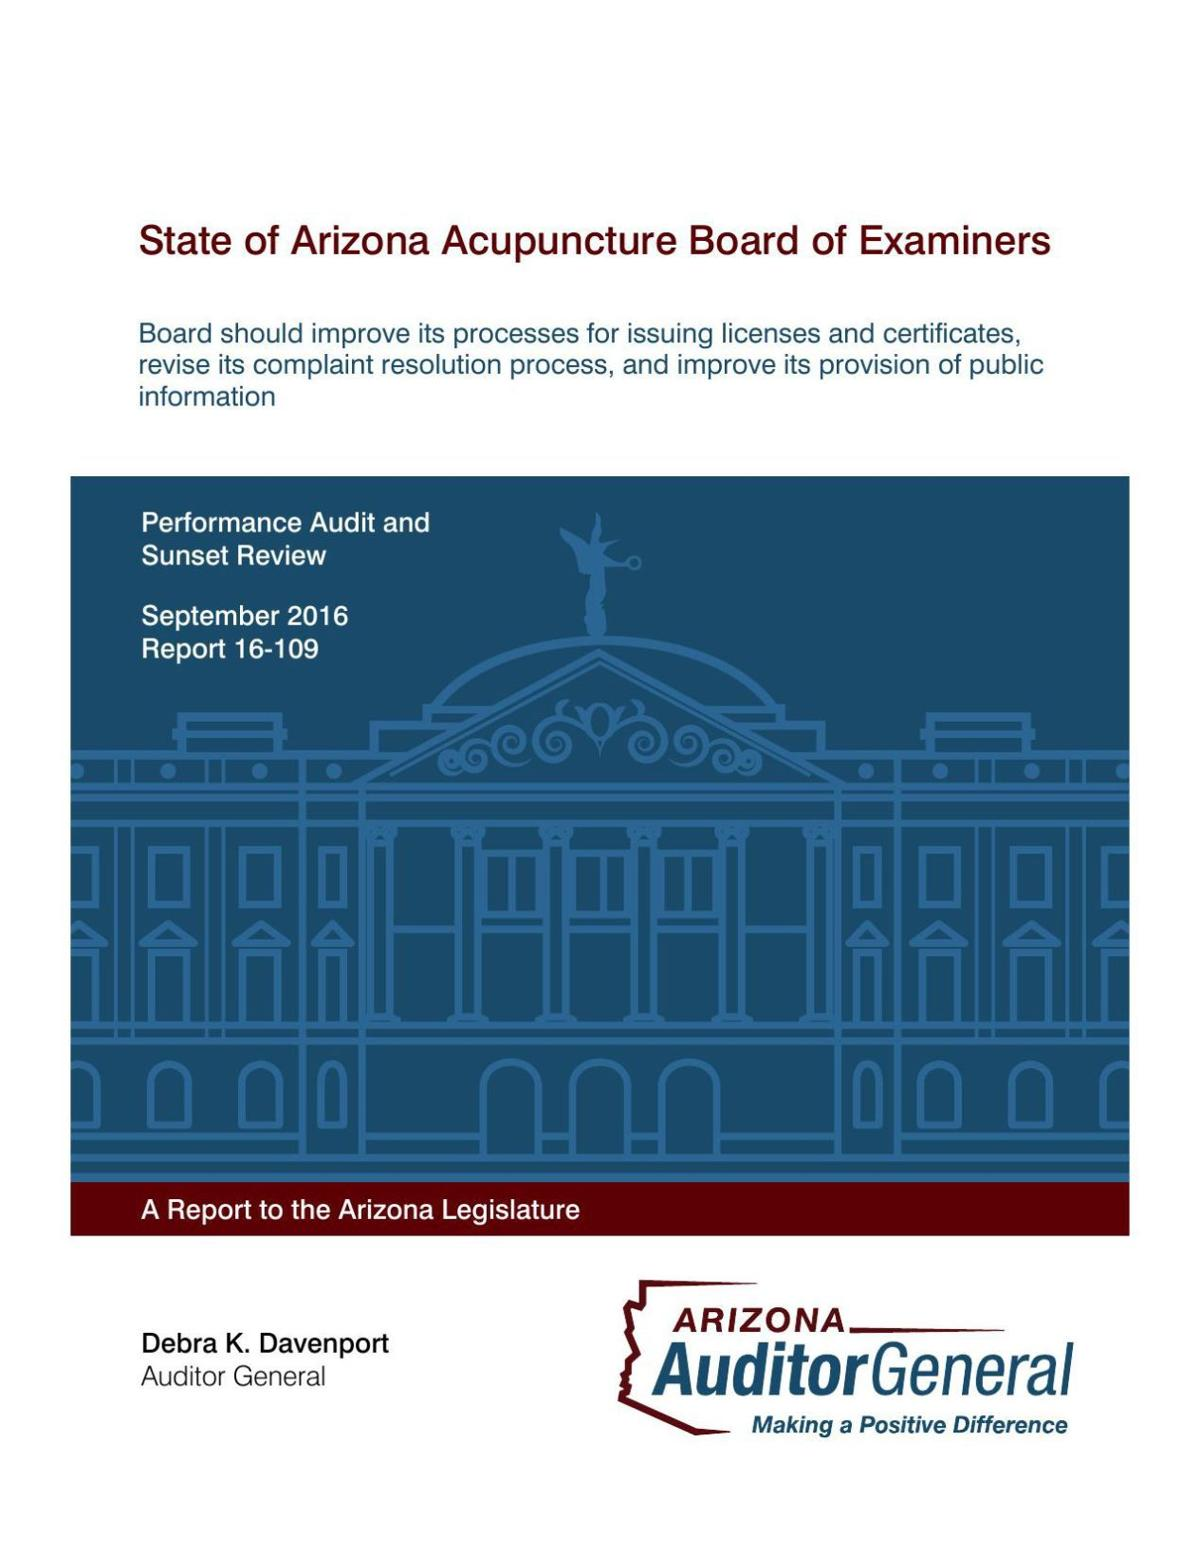 Audit Report: State of Arizona Acupuncture Board of Examiners